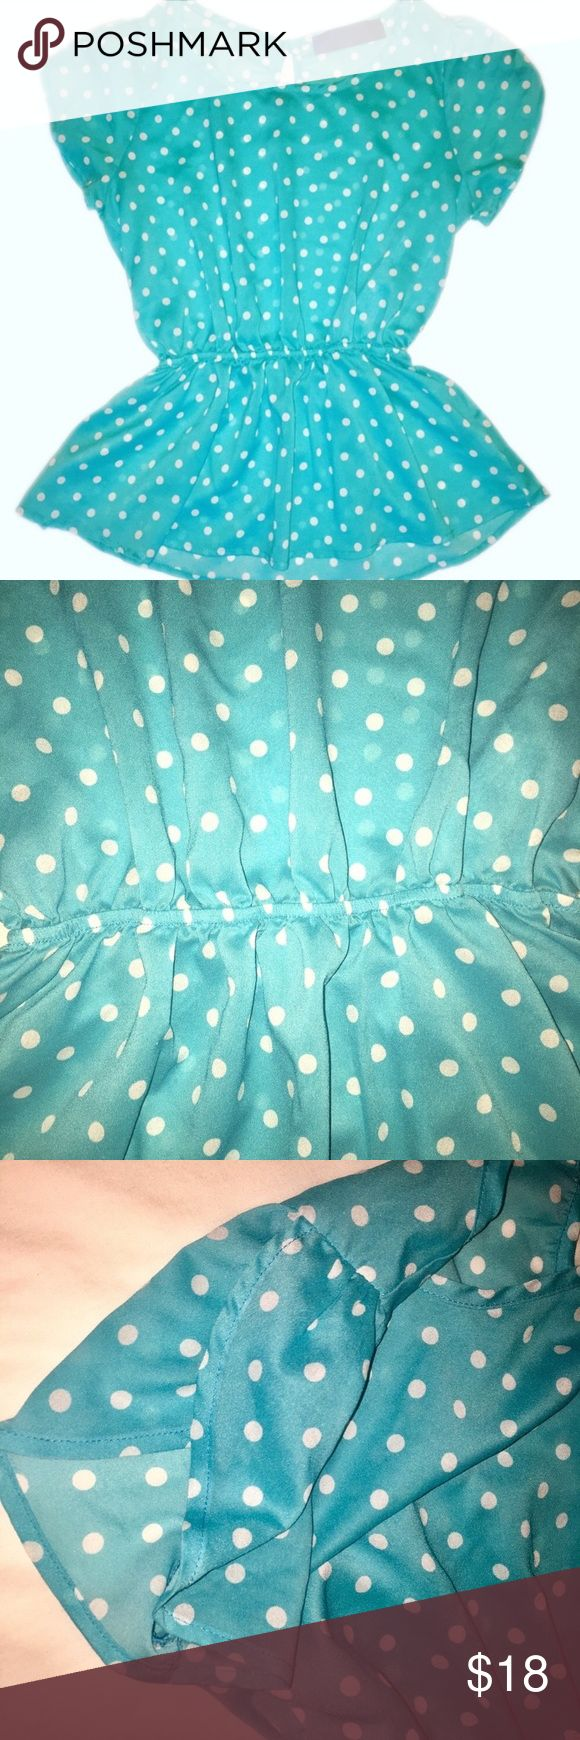 """Blue & White Polka Dot Top Adorable blouse that is a stunning shade of bright aqua with white polka dots. Cinched elastic waist. Short sleeves that overlap for a really pretty look. Button closure at neck. Semi-sheer. Bust: 17.5"""". Length: 23.5"""". Can easily be dressed up for the office or dressed down for girls night out or movie night. In excellent condition. Tops"""